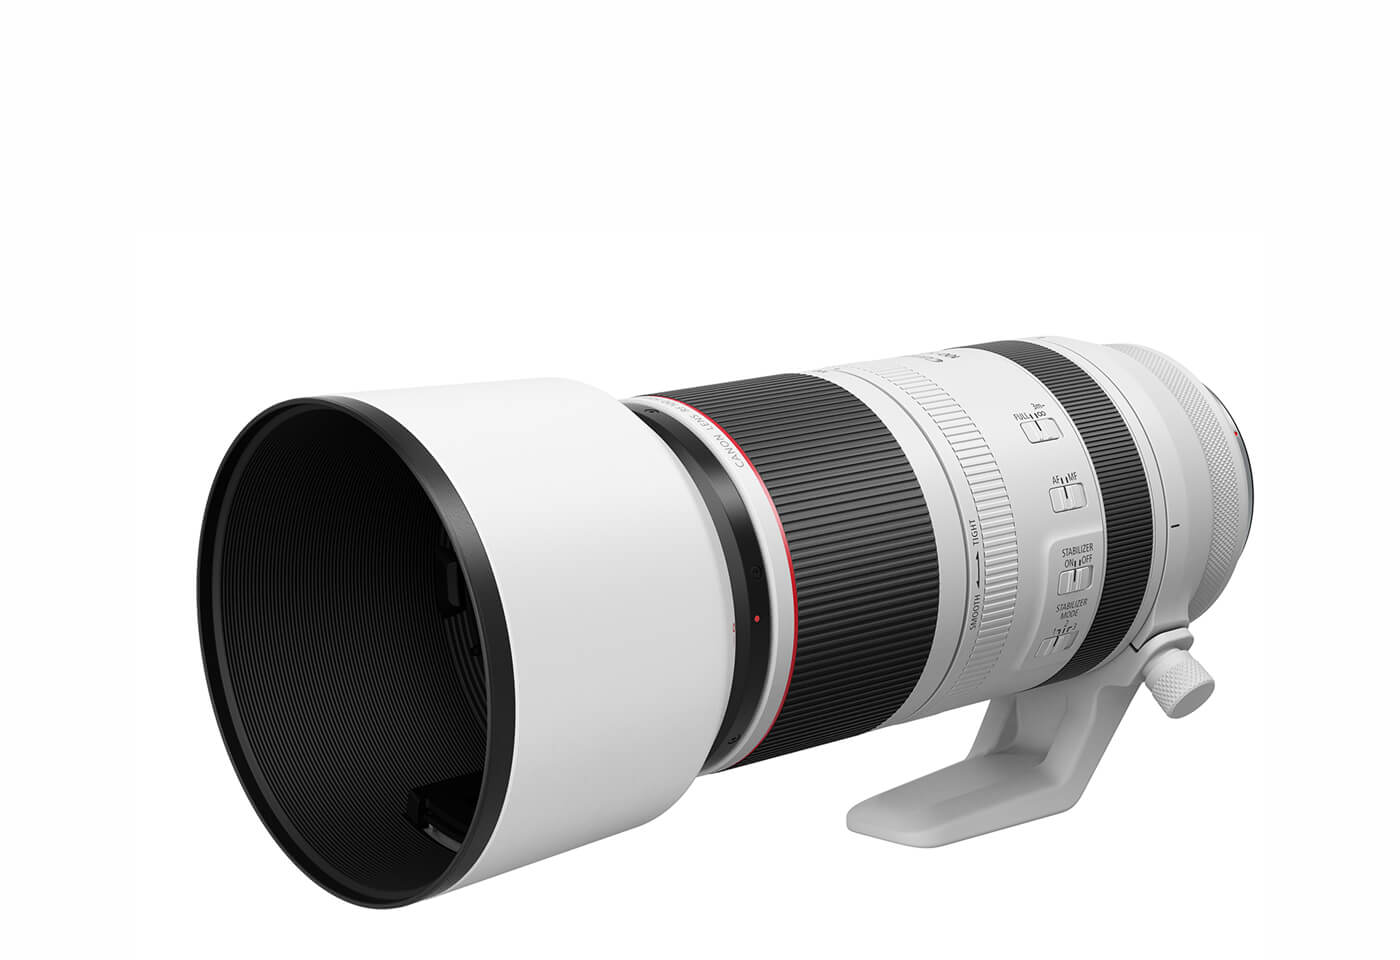 Profile image of RF 100-500mm f/4.5-7.1 L IS USM telephoto lens with hood